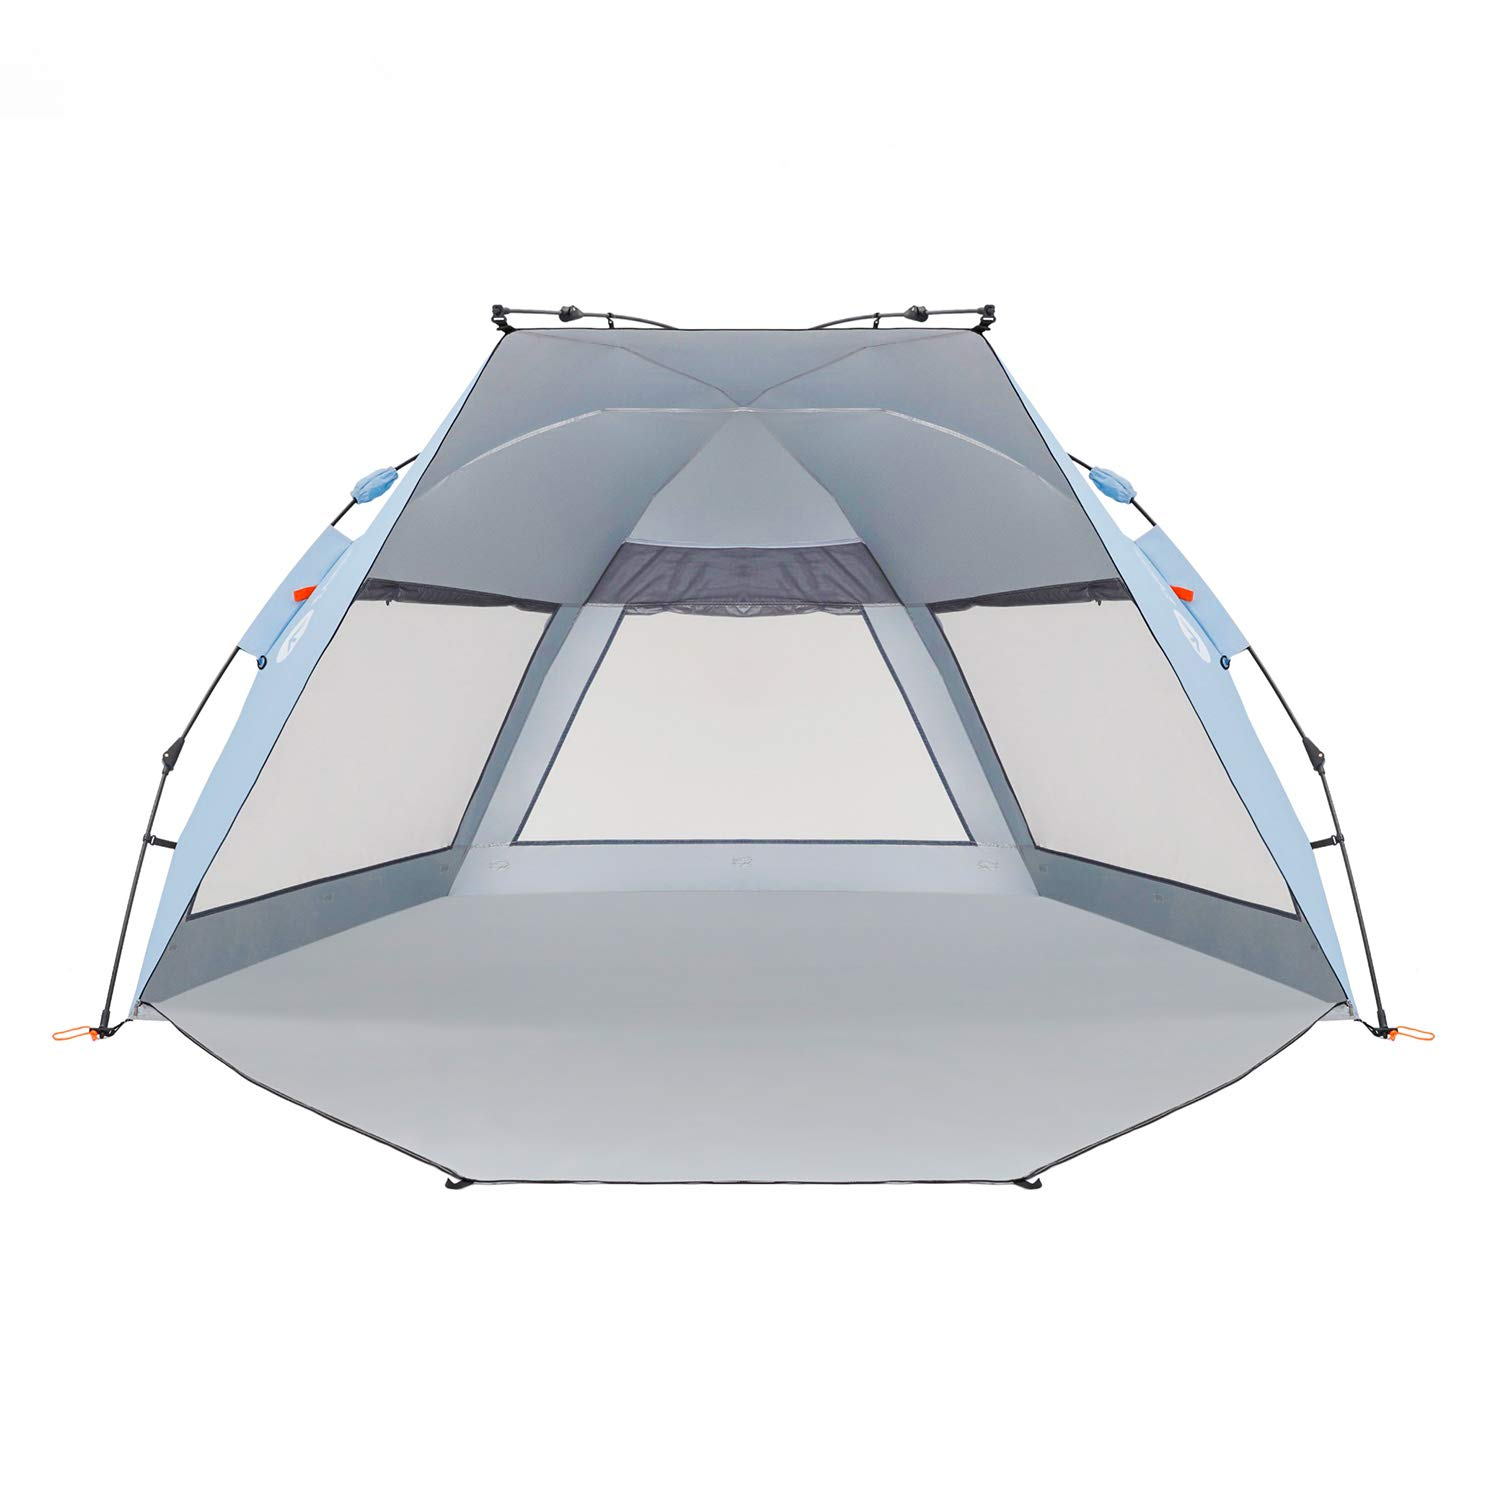 Easthills Outdoors Coastview Classic 2-4 Person Deluxe XL Beach Tent Pop Up Sun Shelter Double Silver Coating Sun Shade Instant Tent for Beach with Carrying Bag Sky Blue by Easthills Outdoors